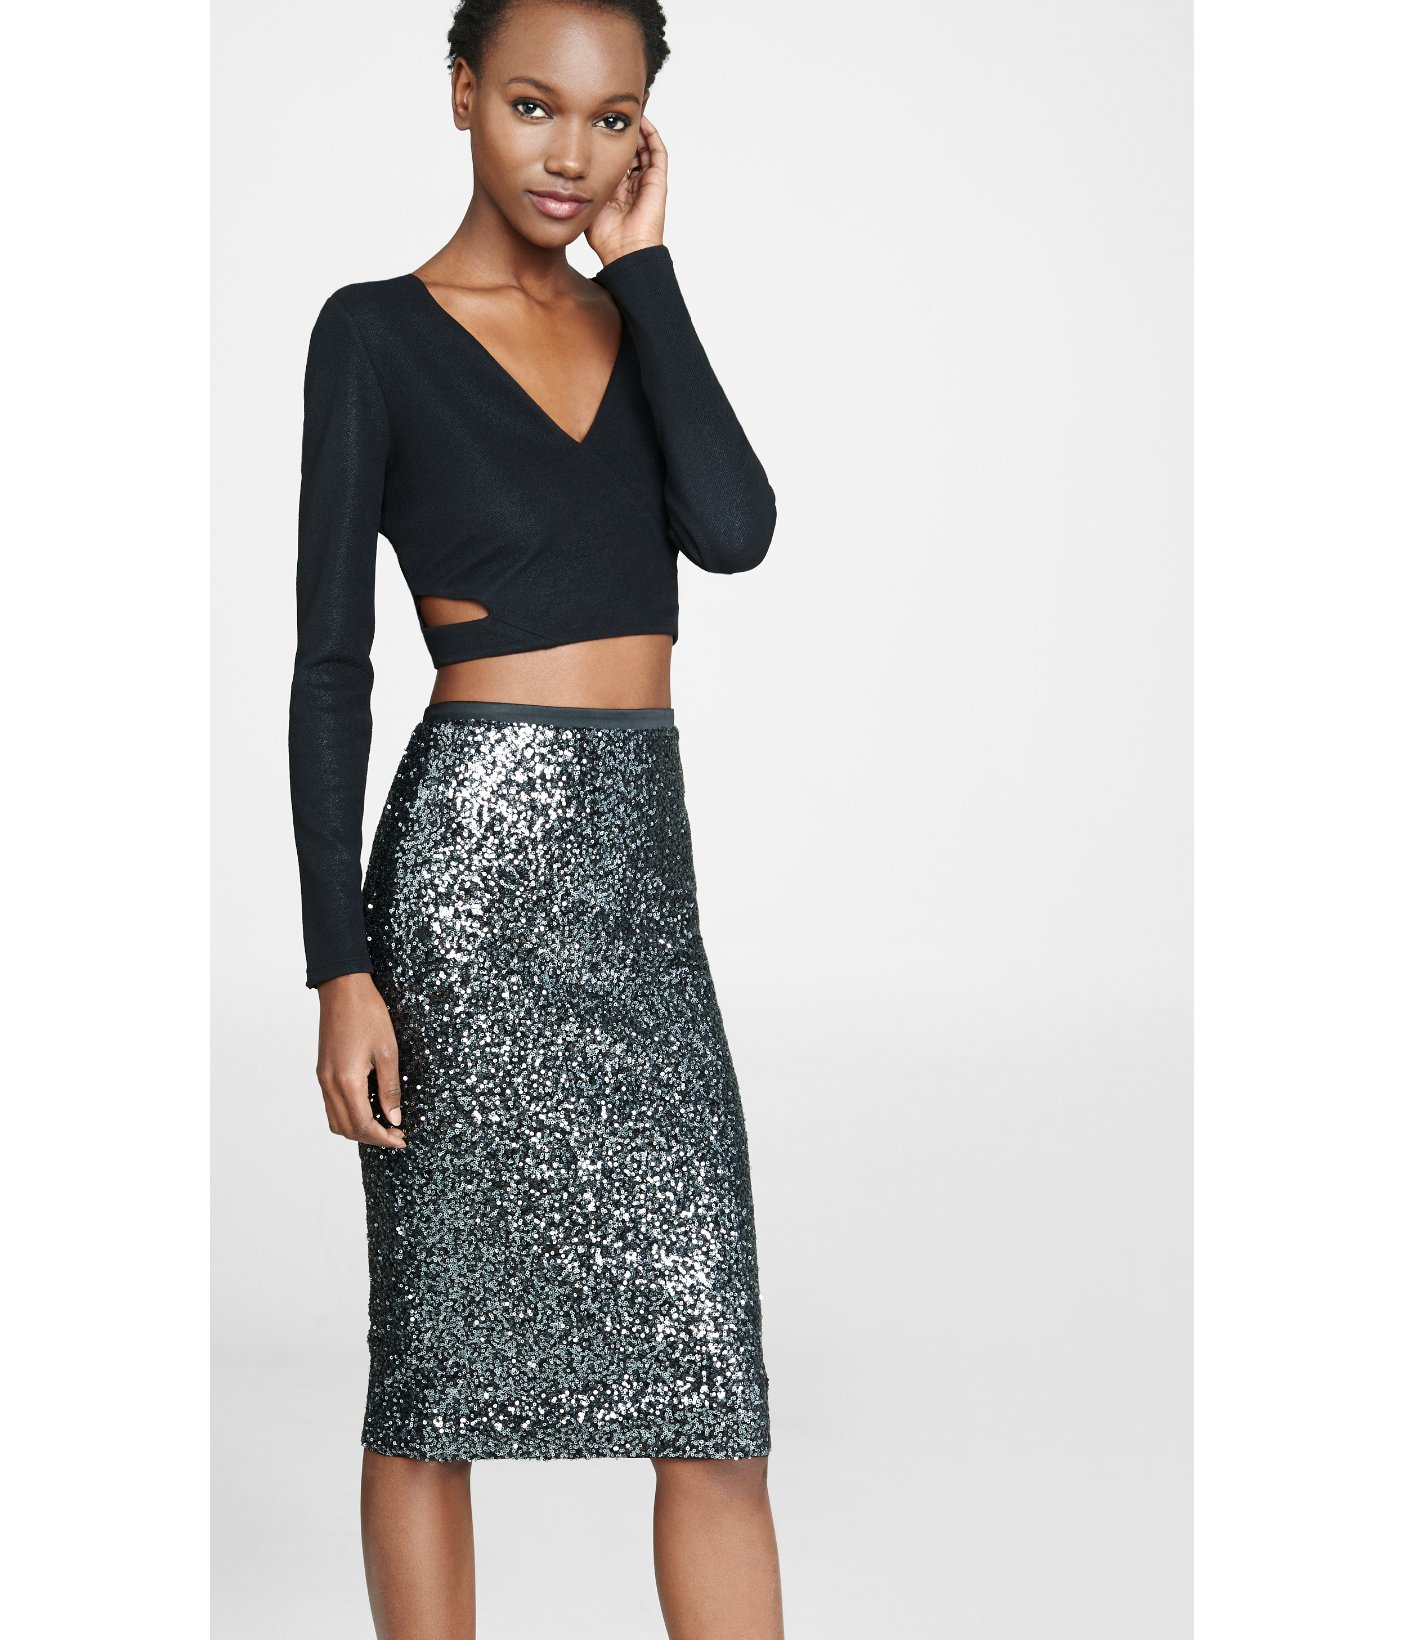 express high waisted sequined pencil skirt in black pitch